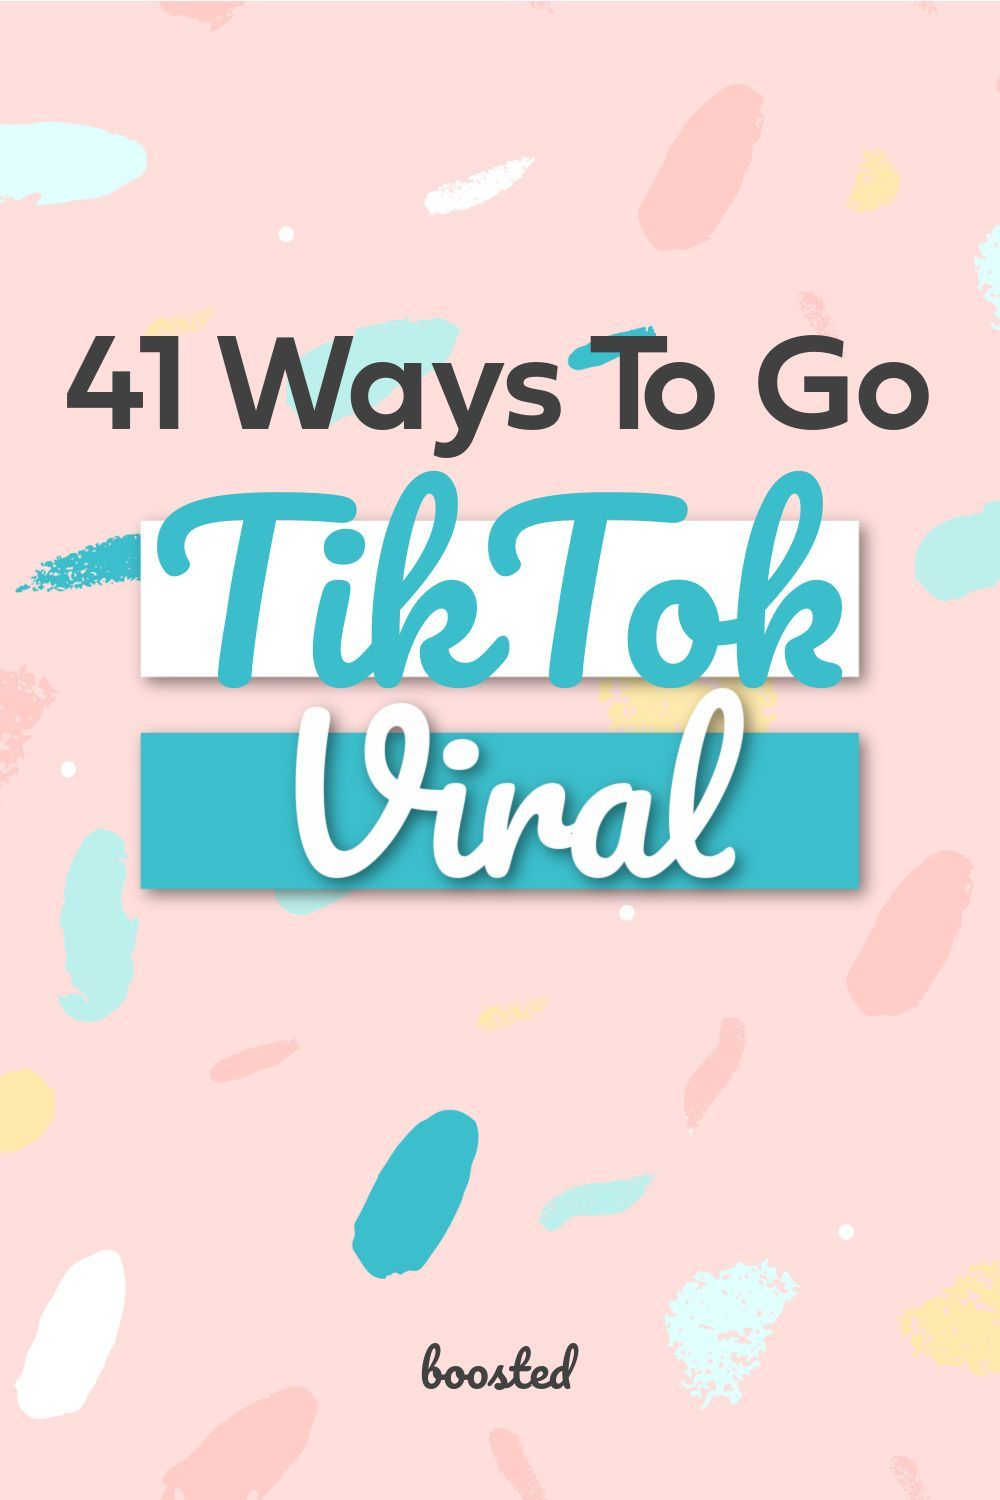 41 Tiktok Video Ideas For Small Businesses Boosted Video Marketing Strategies Business Marketing Plan Marketing Strategy Social Media